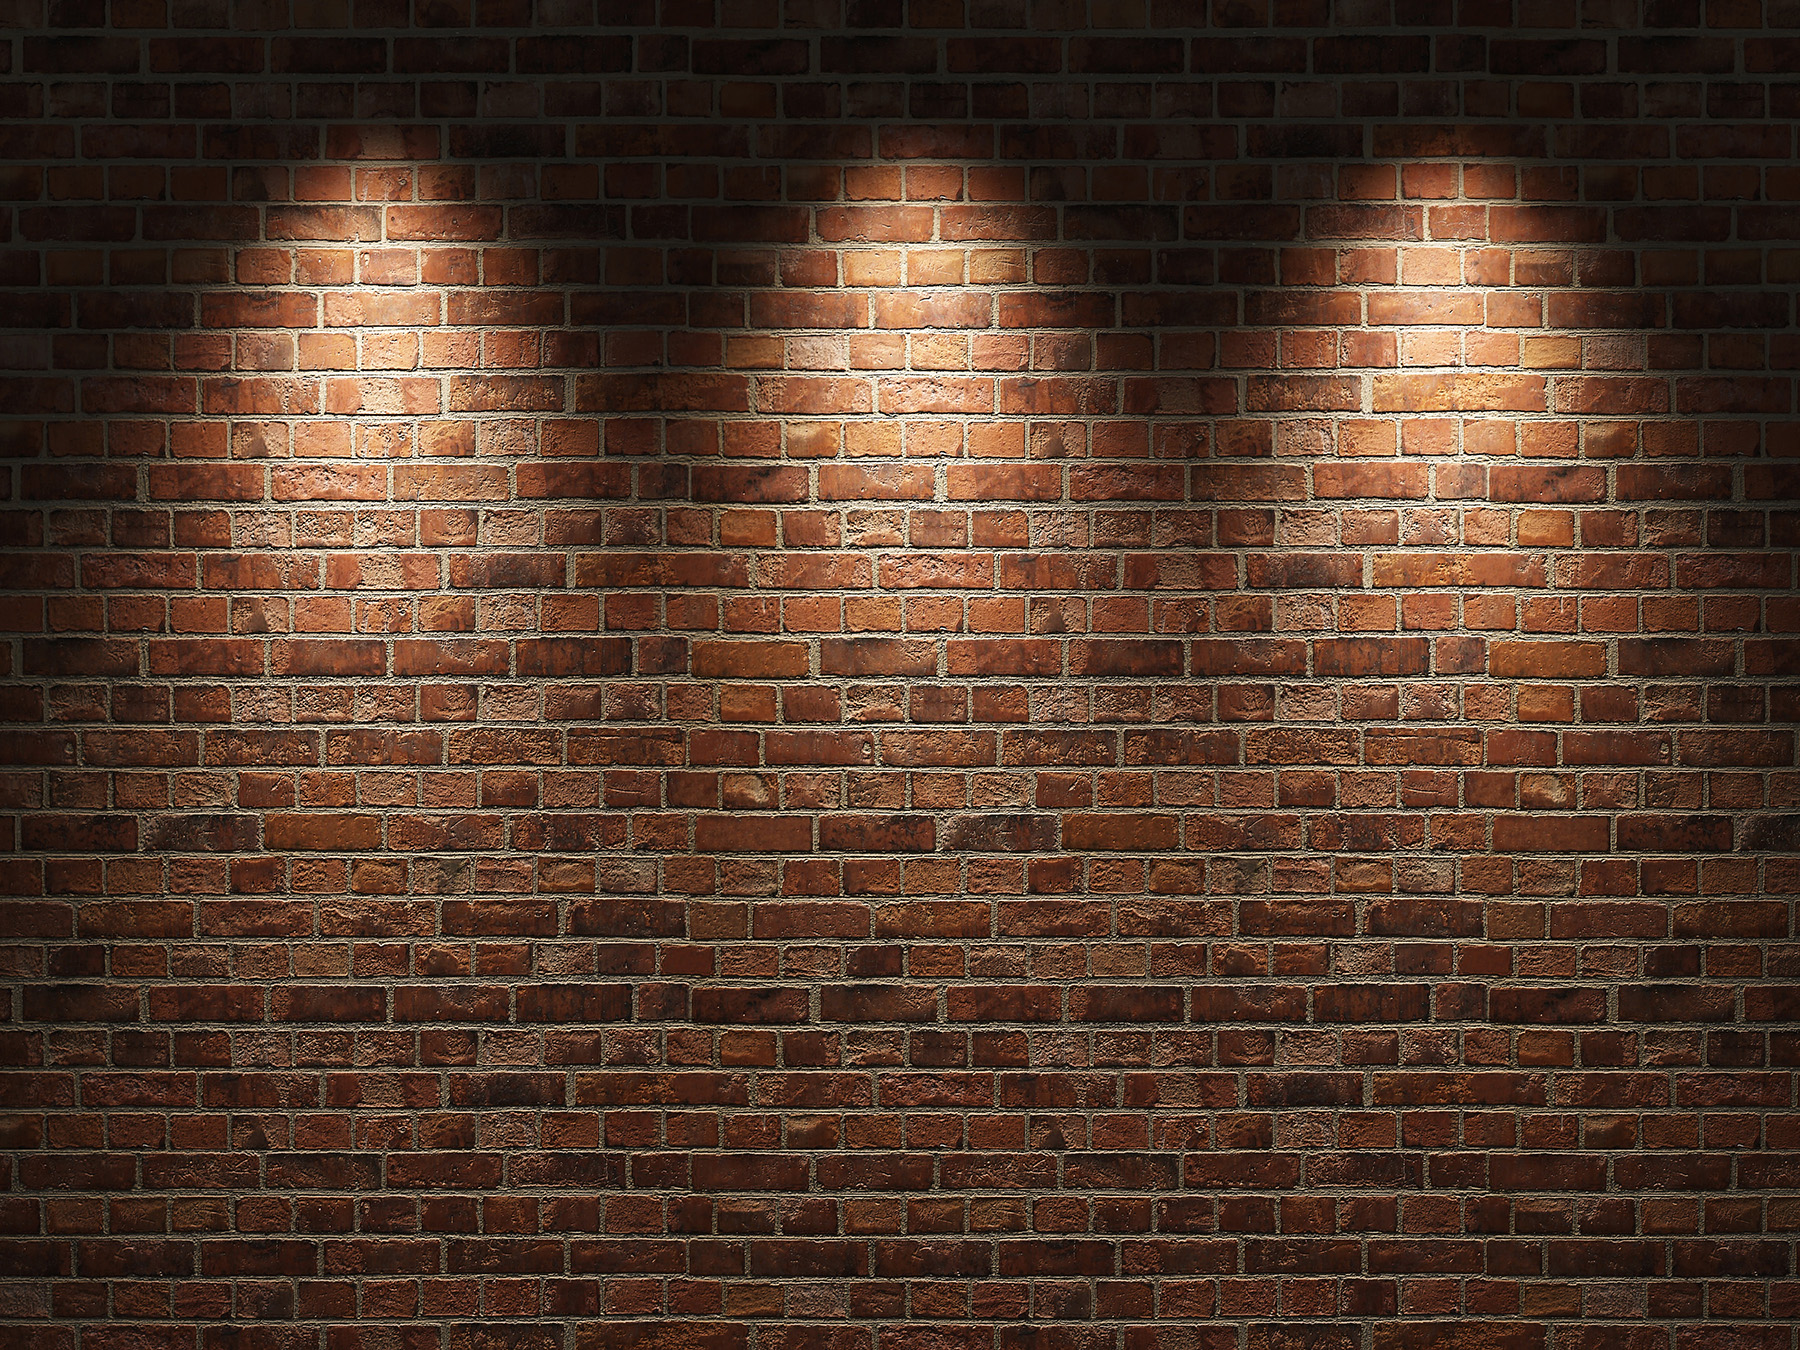 Brick Wall Design best wall decor pictures of brick walls designs white brick wall with wood floor moreover Best Wall Decor Pictures Of Brick Walls Designs White Brick Wall With Wood Floor Moreover